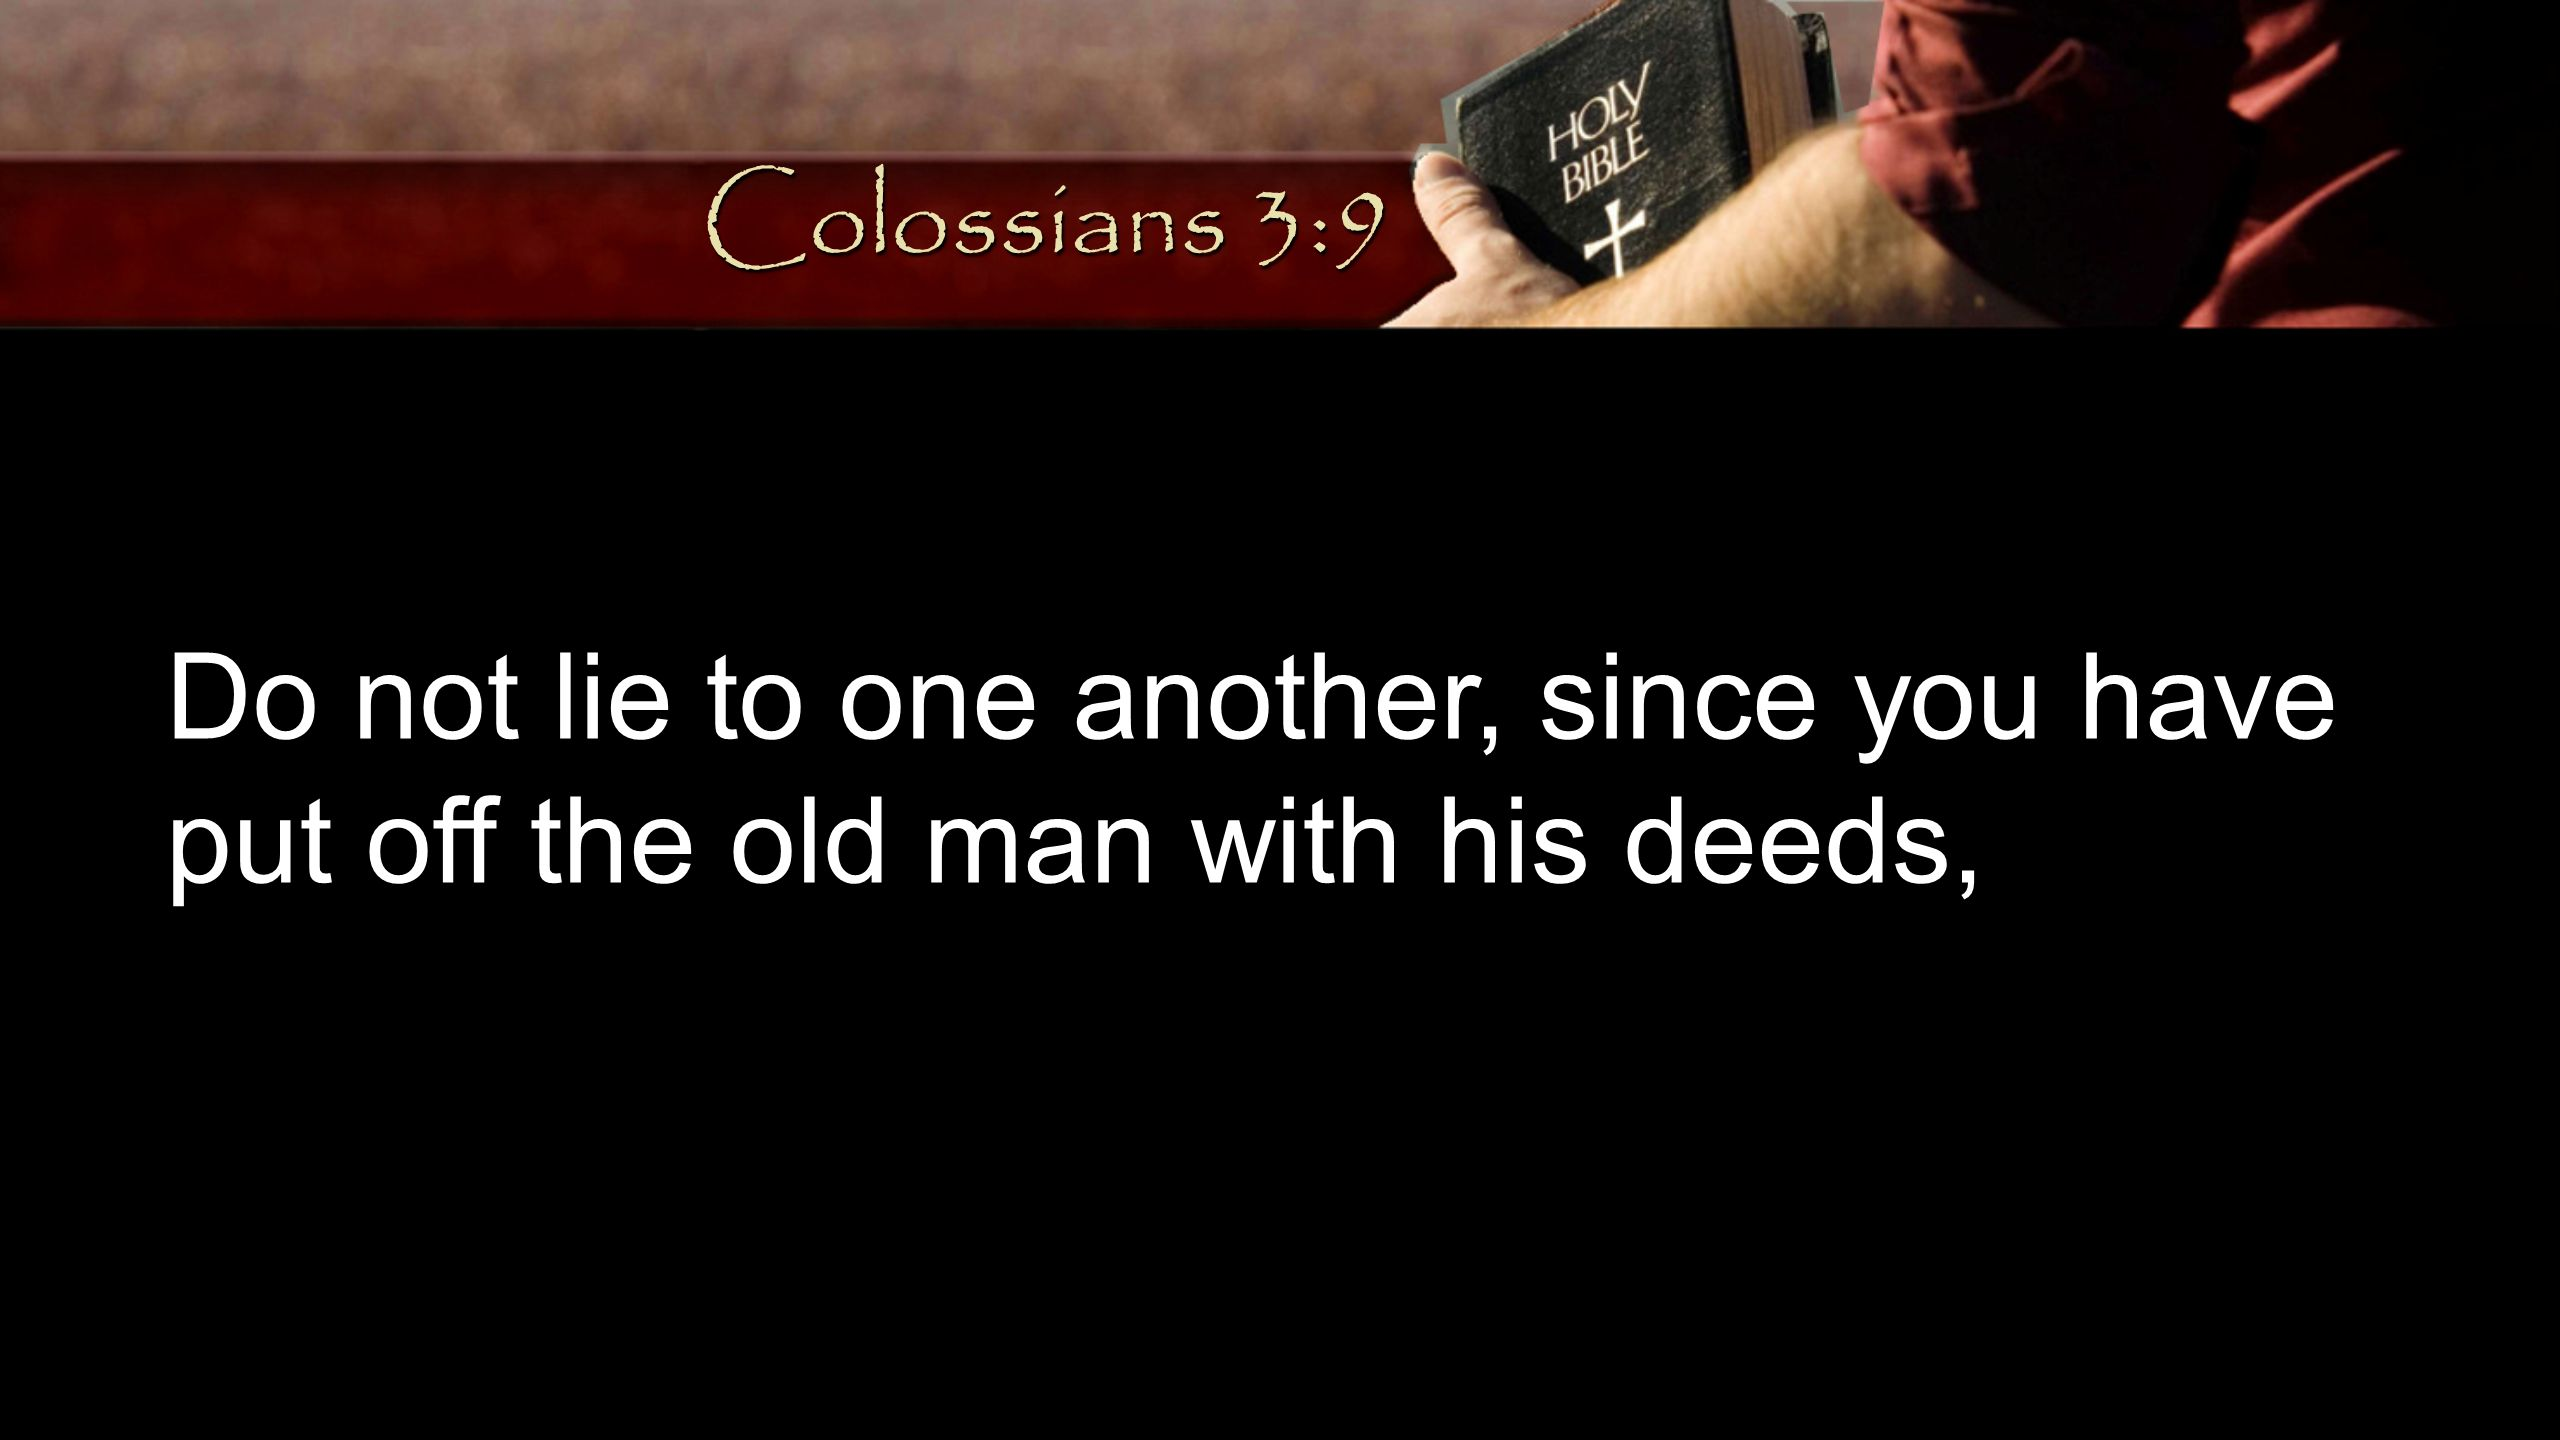 Do not lie to one another, since you have put off the old man with his deeds, Colossians 3:9